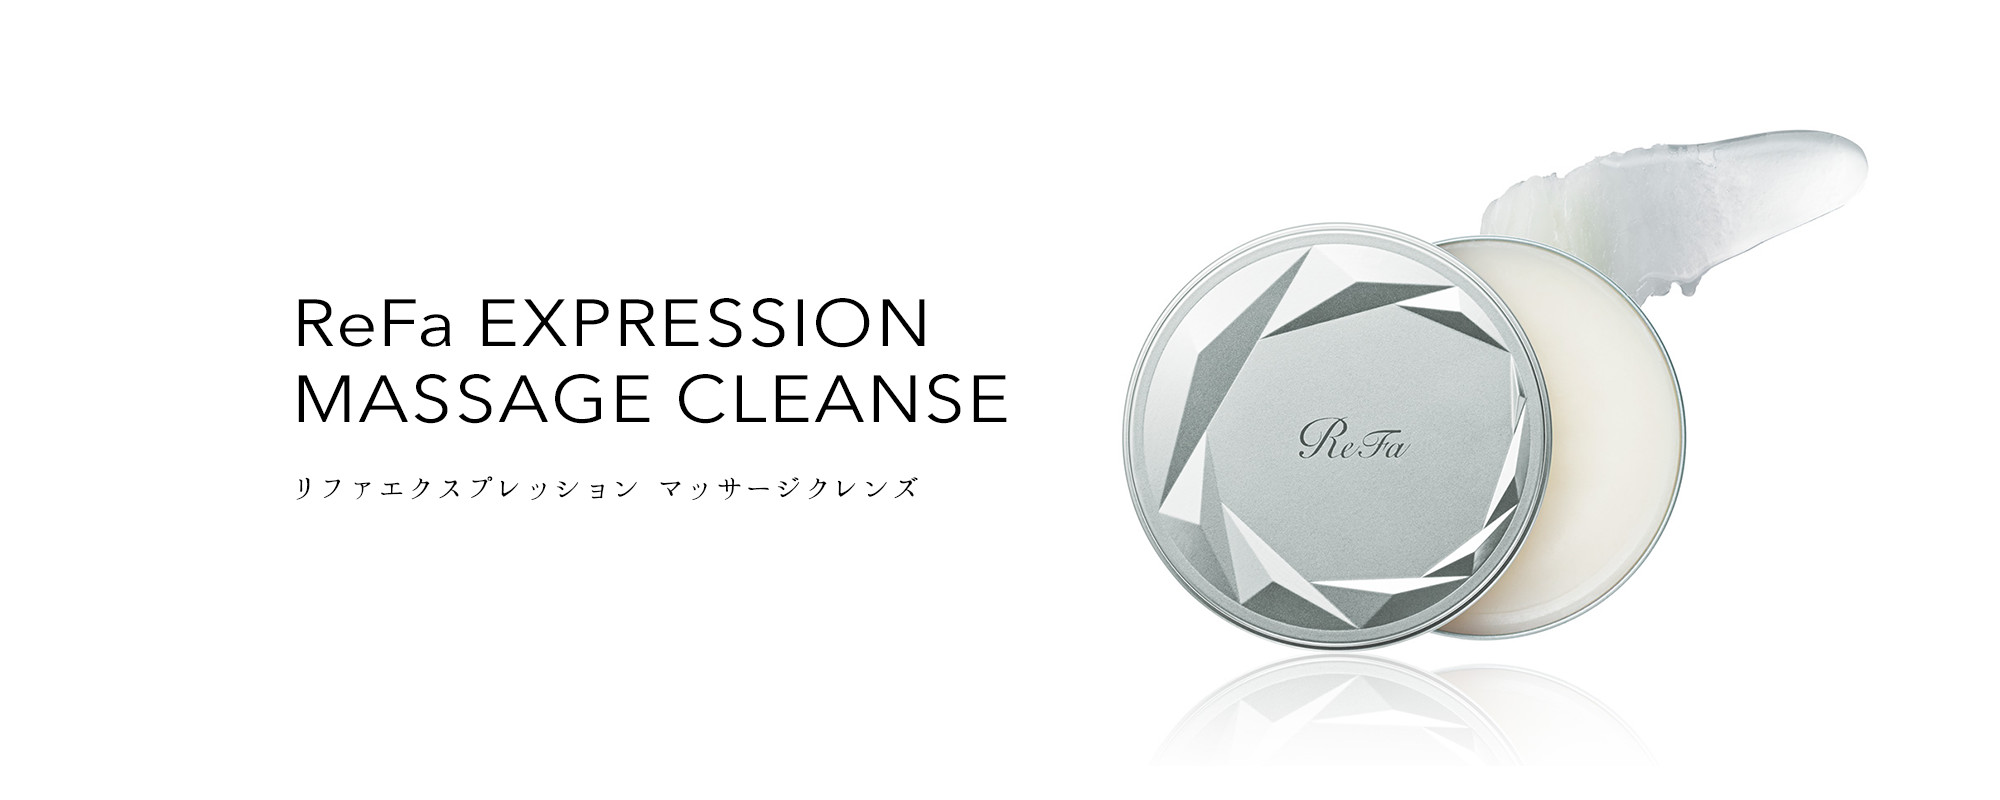 ReFa EXPRESSION MASSAGE CLEANSE(リファエクスプレッション マッサージクレンズ)